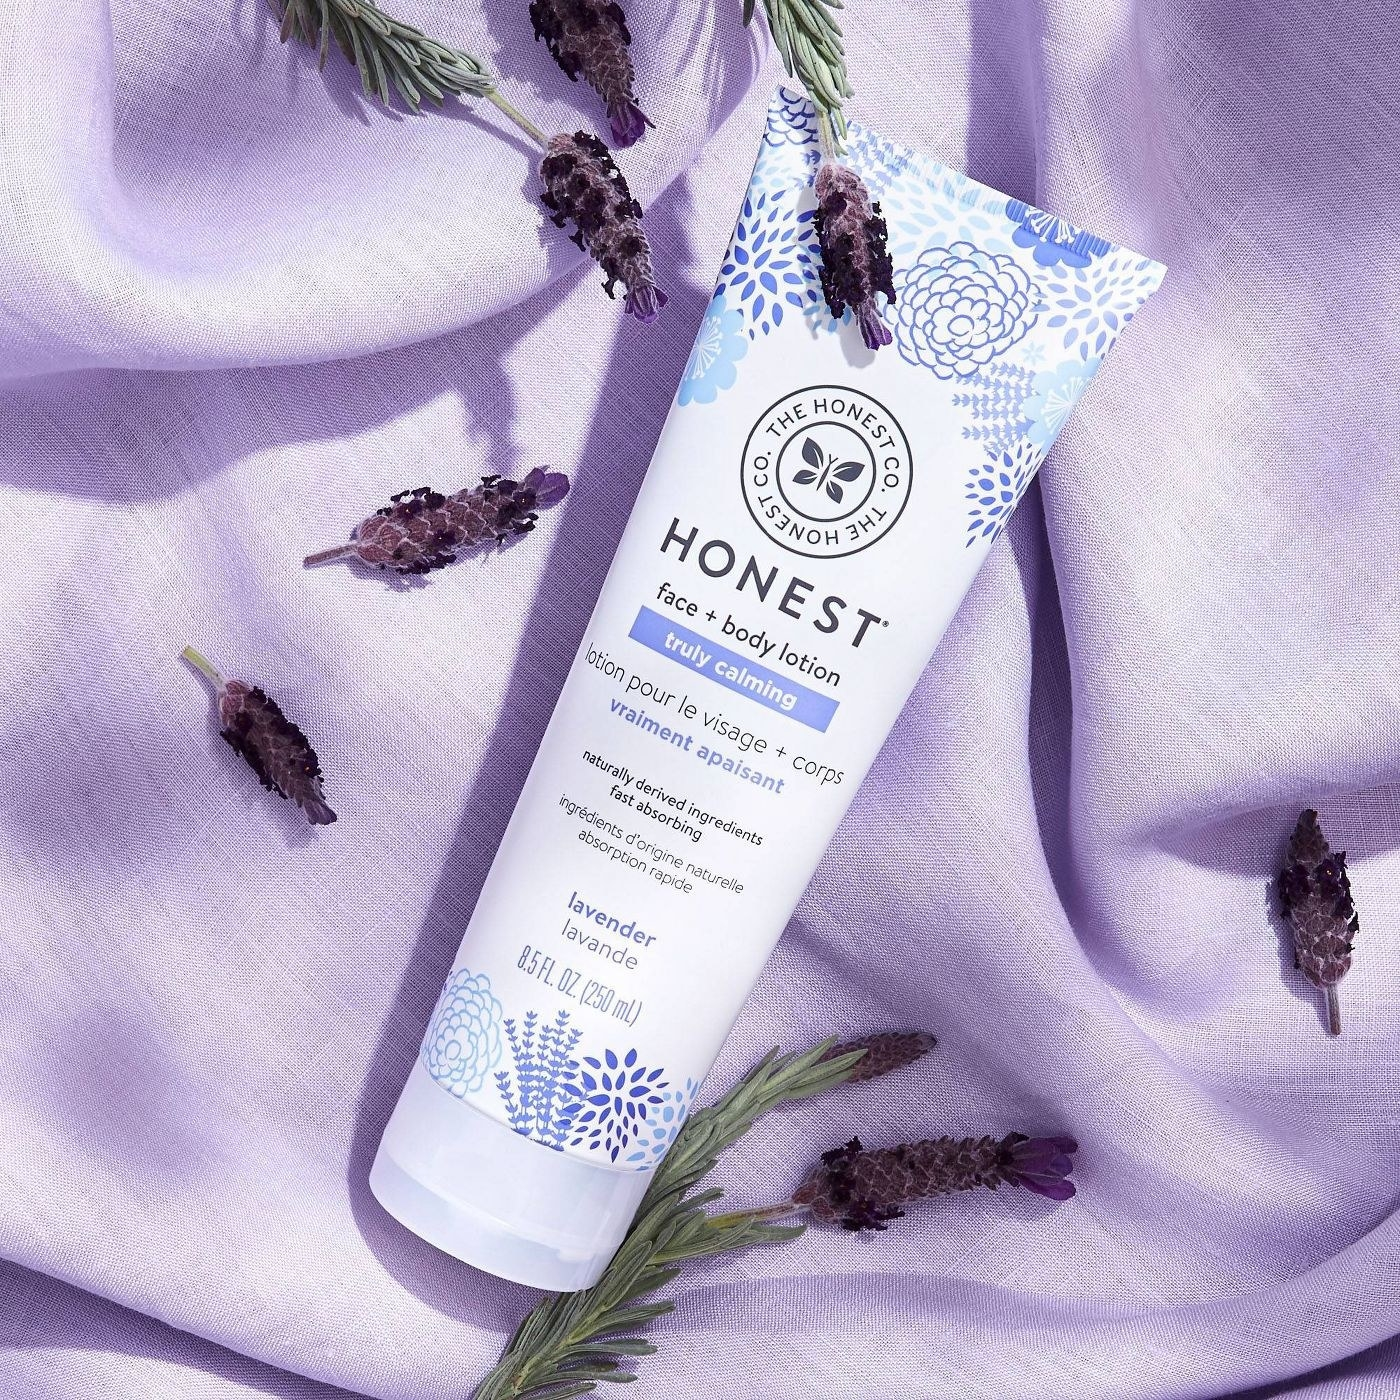 A bottle of lavender face and body lotion on a purple backdrop